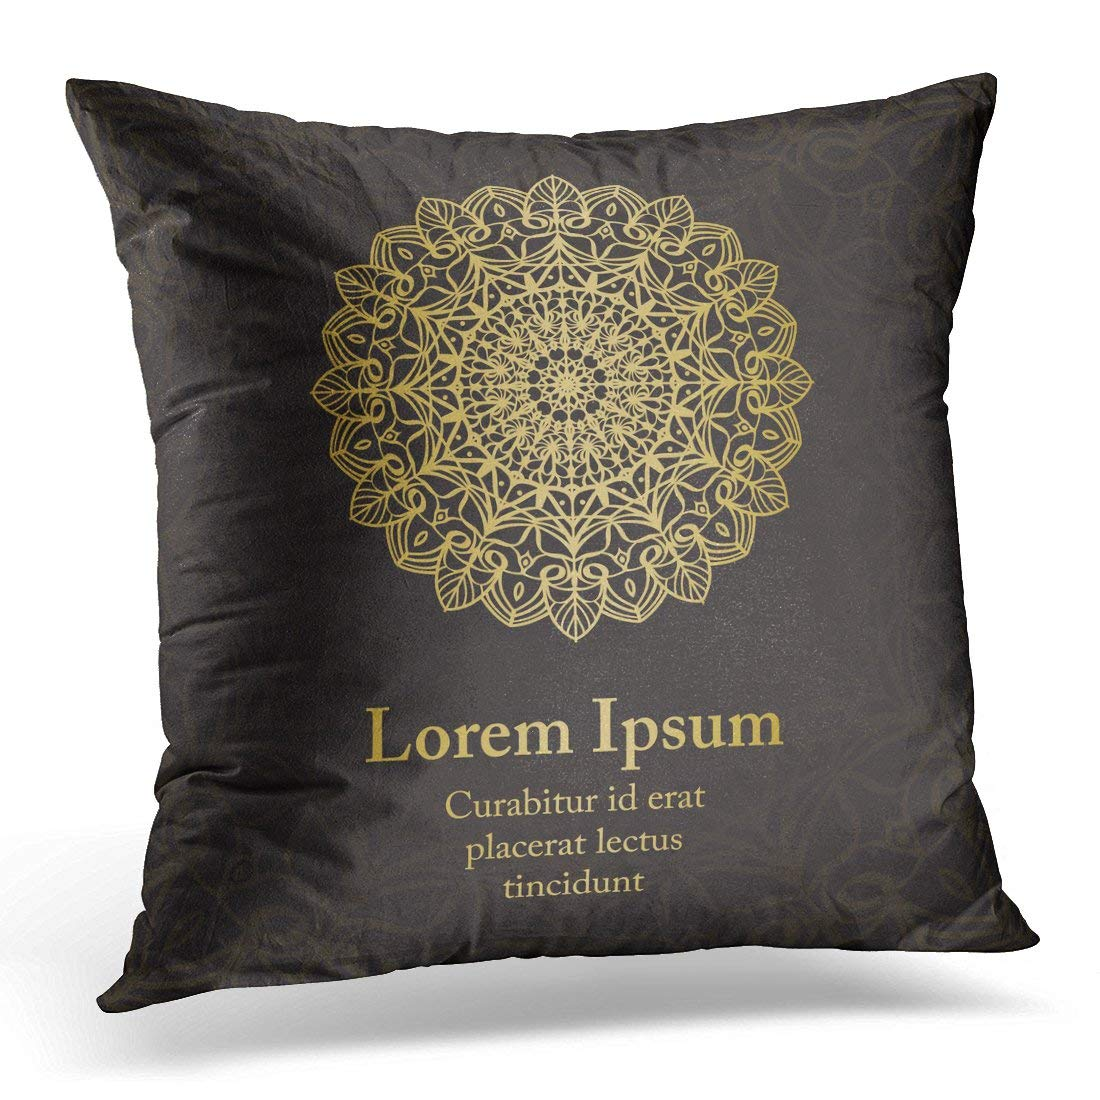 USART Henna with Gold Mandala Based on Ancient Greek and Ornaments Abstraction Pillow Case Pillow Cover 18x18 inch